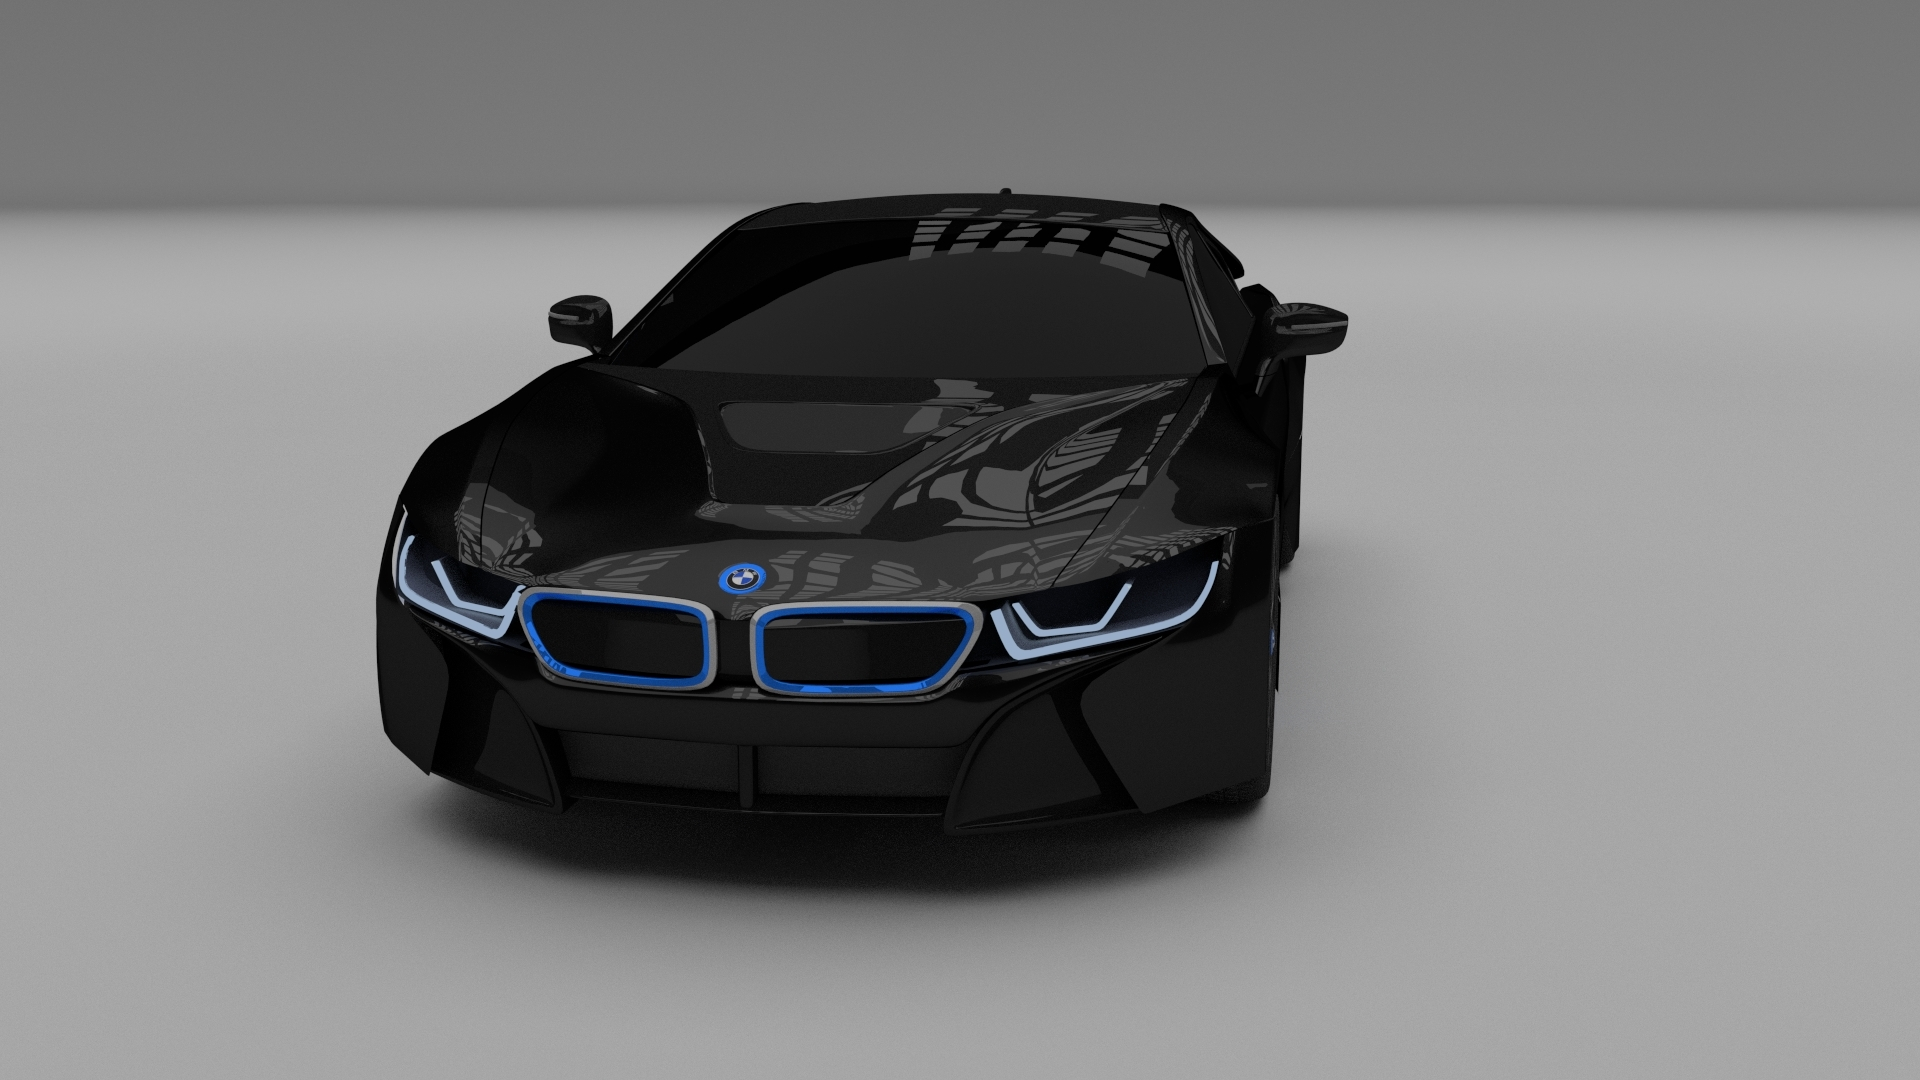 auto got aerodynamik on front schnitzer ac aerodynamics its radsa the express sale for hands bmw has